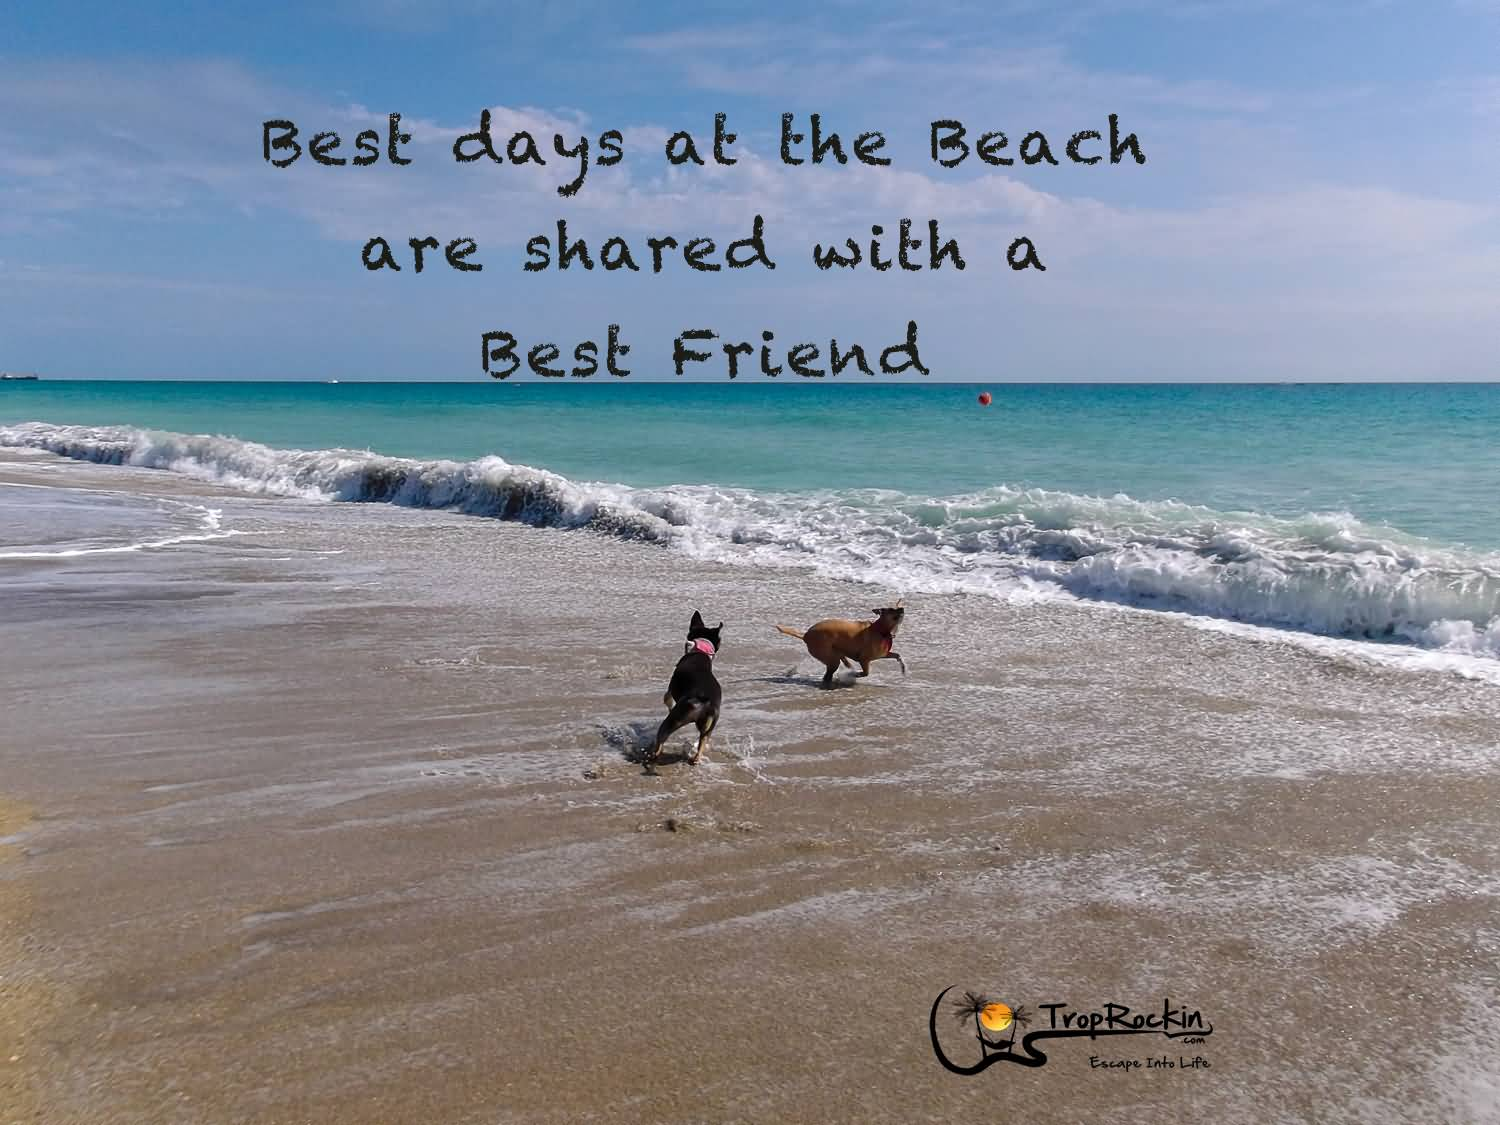 Beach And Friends Quotes Meme Image 19 Quotesbae